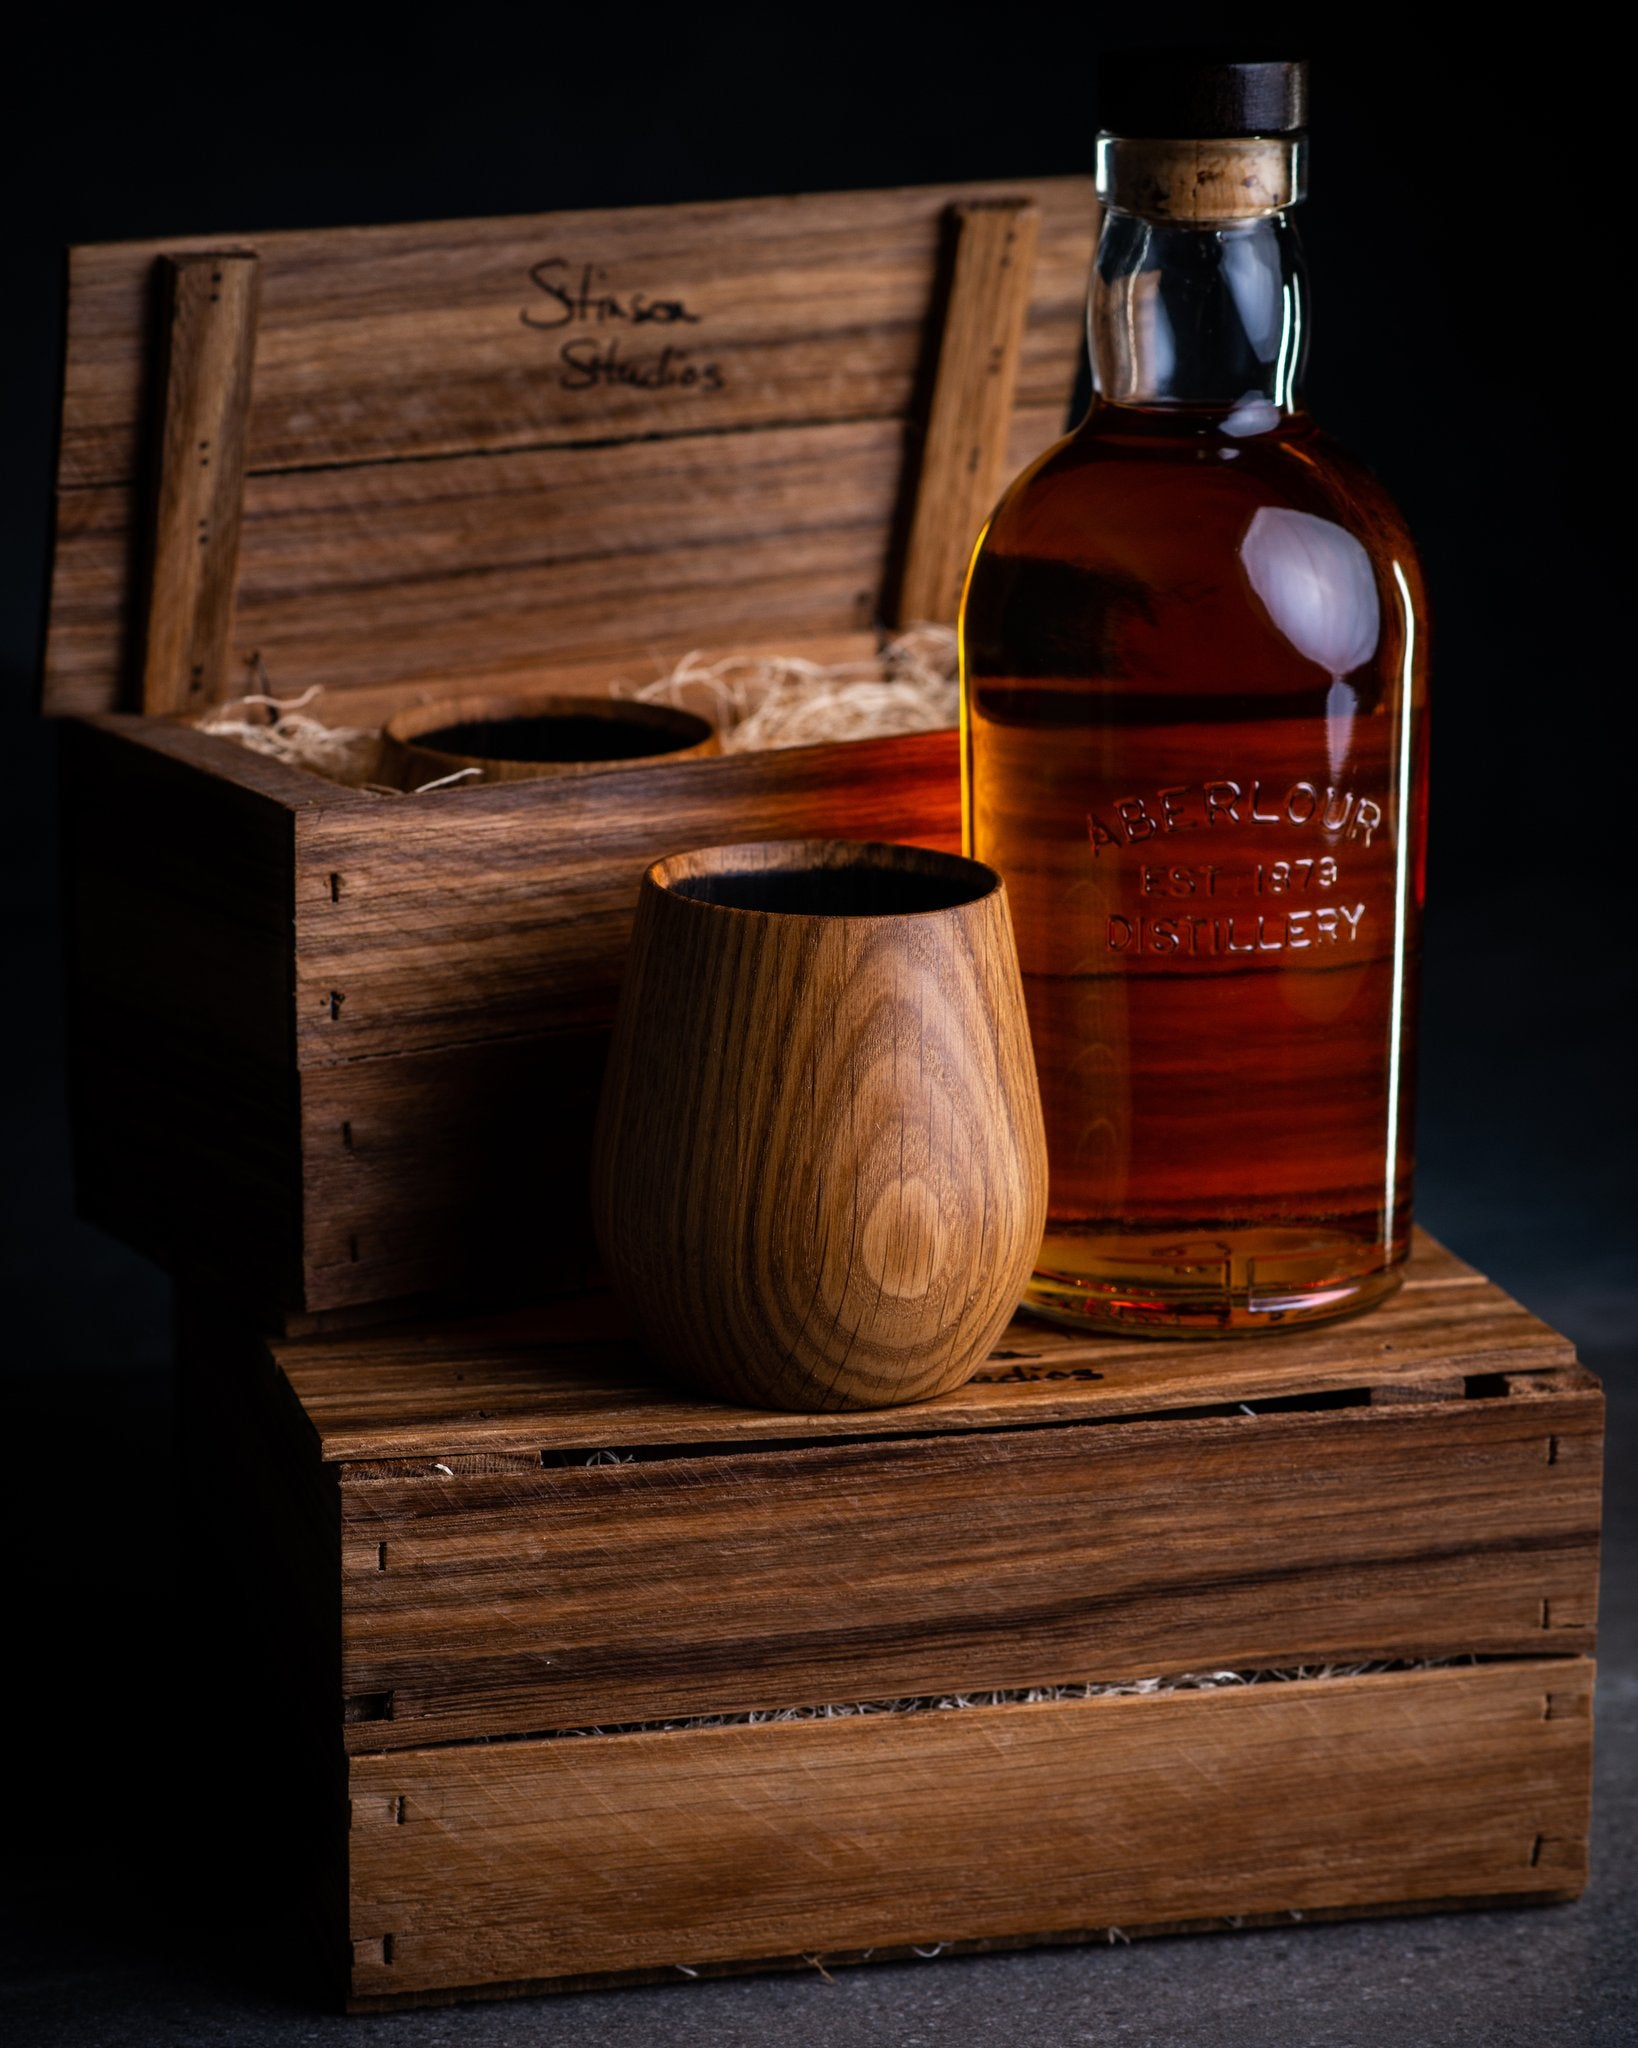 Made in Canada charred oak whiskey tumbler by Stinson Studios with gift crates and a bottle of whisky.